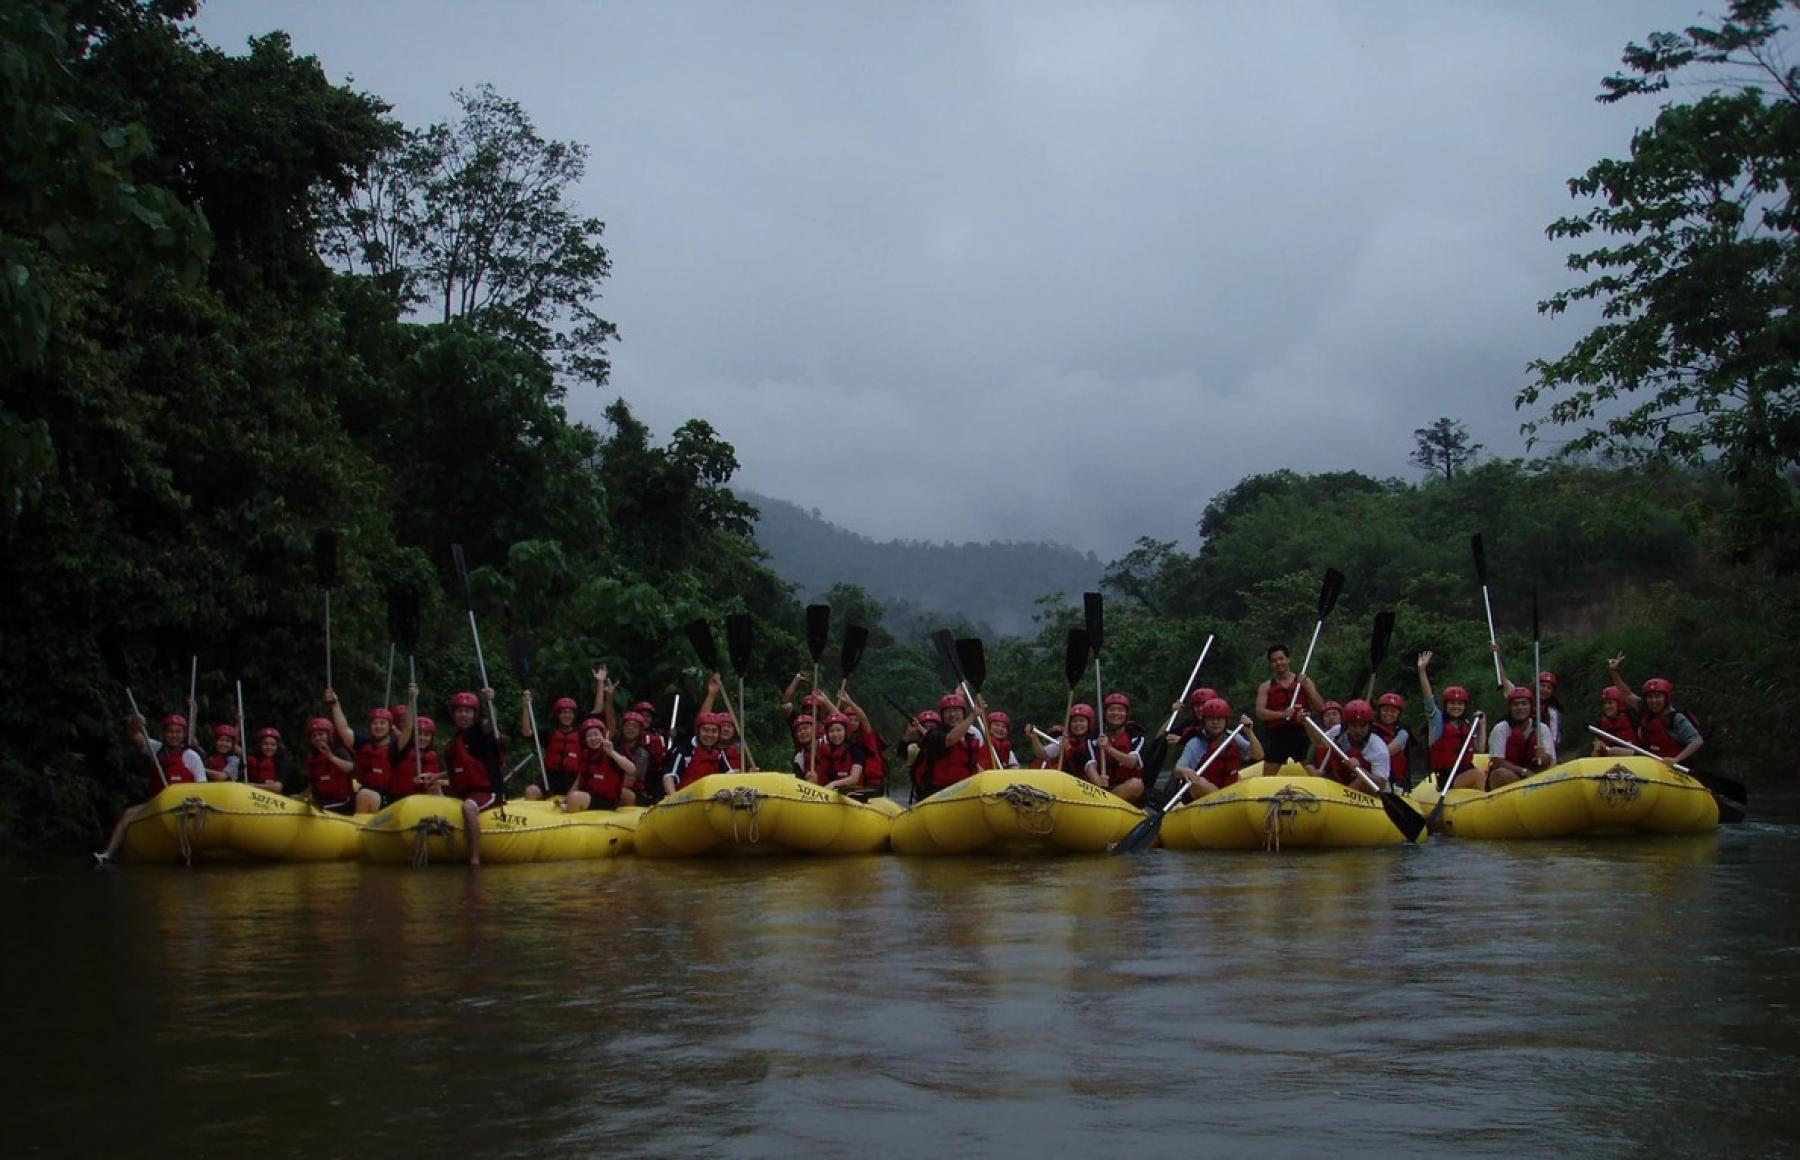 An adventurous weekend away from the city, into the rainforest and river! starting at Malaysia, Kuala Lumpur